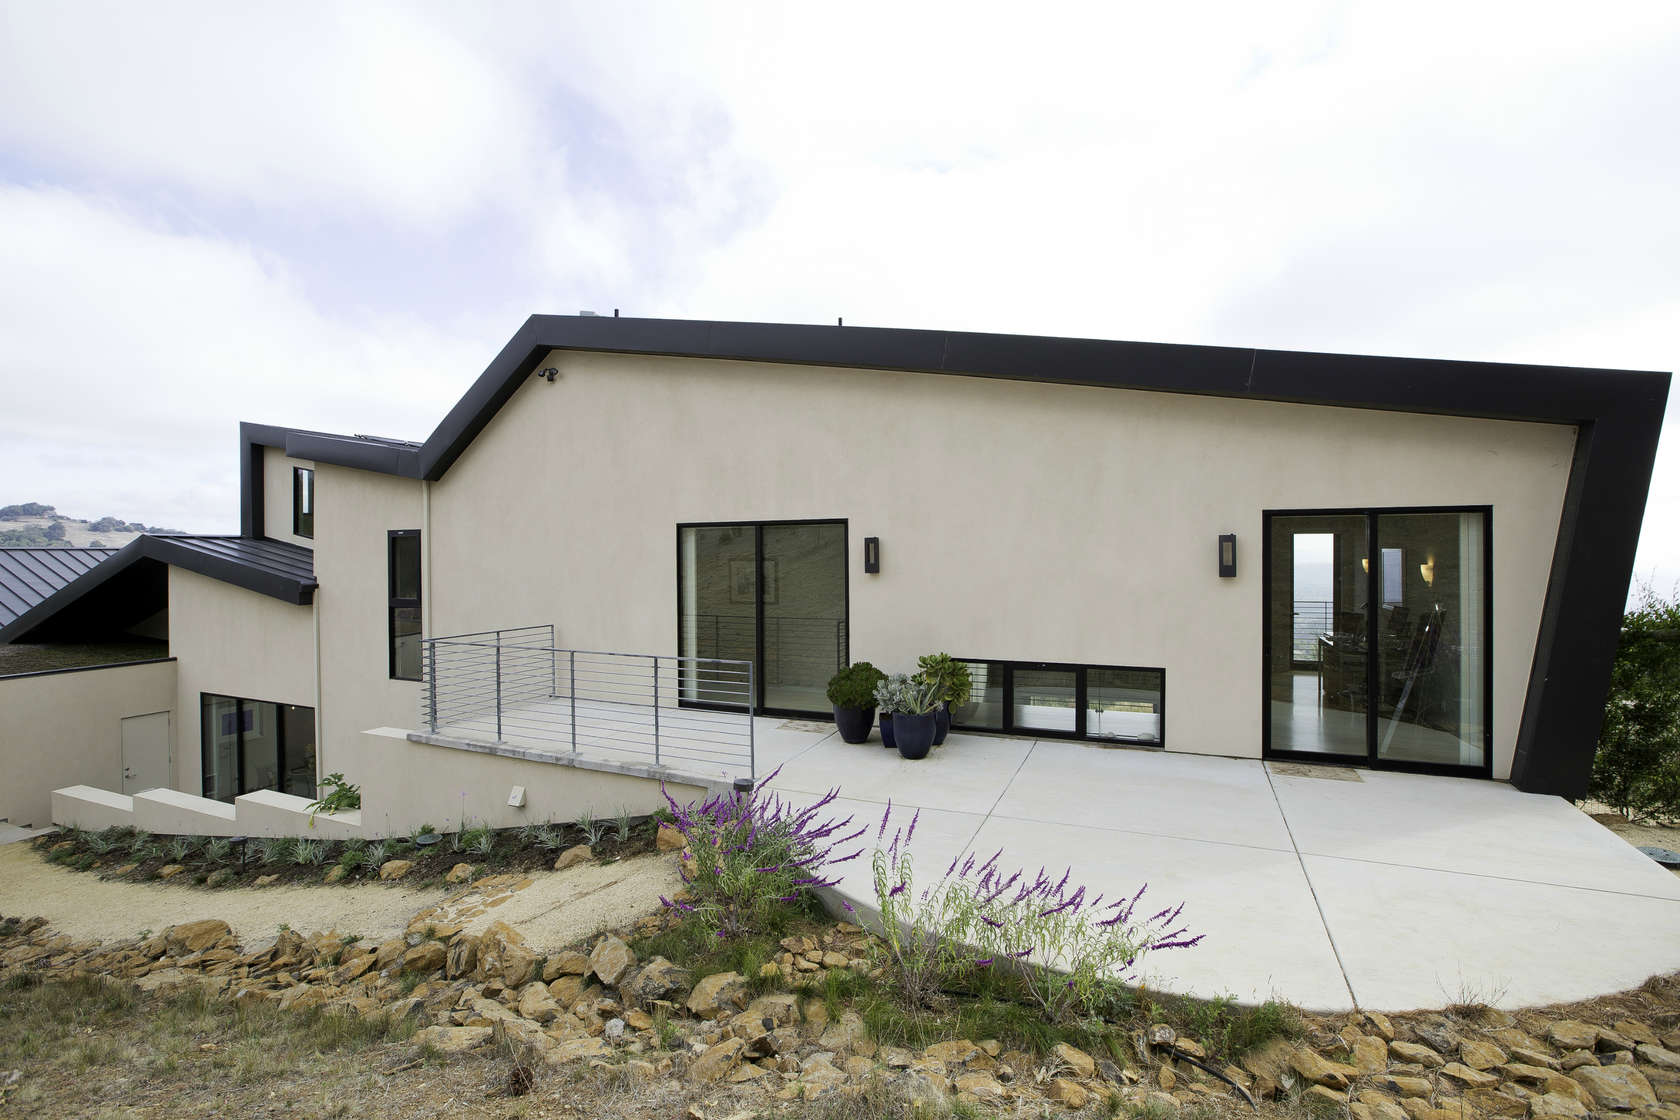 Home Exterior Design - Custom home in sonoma gives a modern twist to wine country